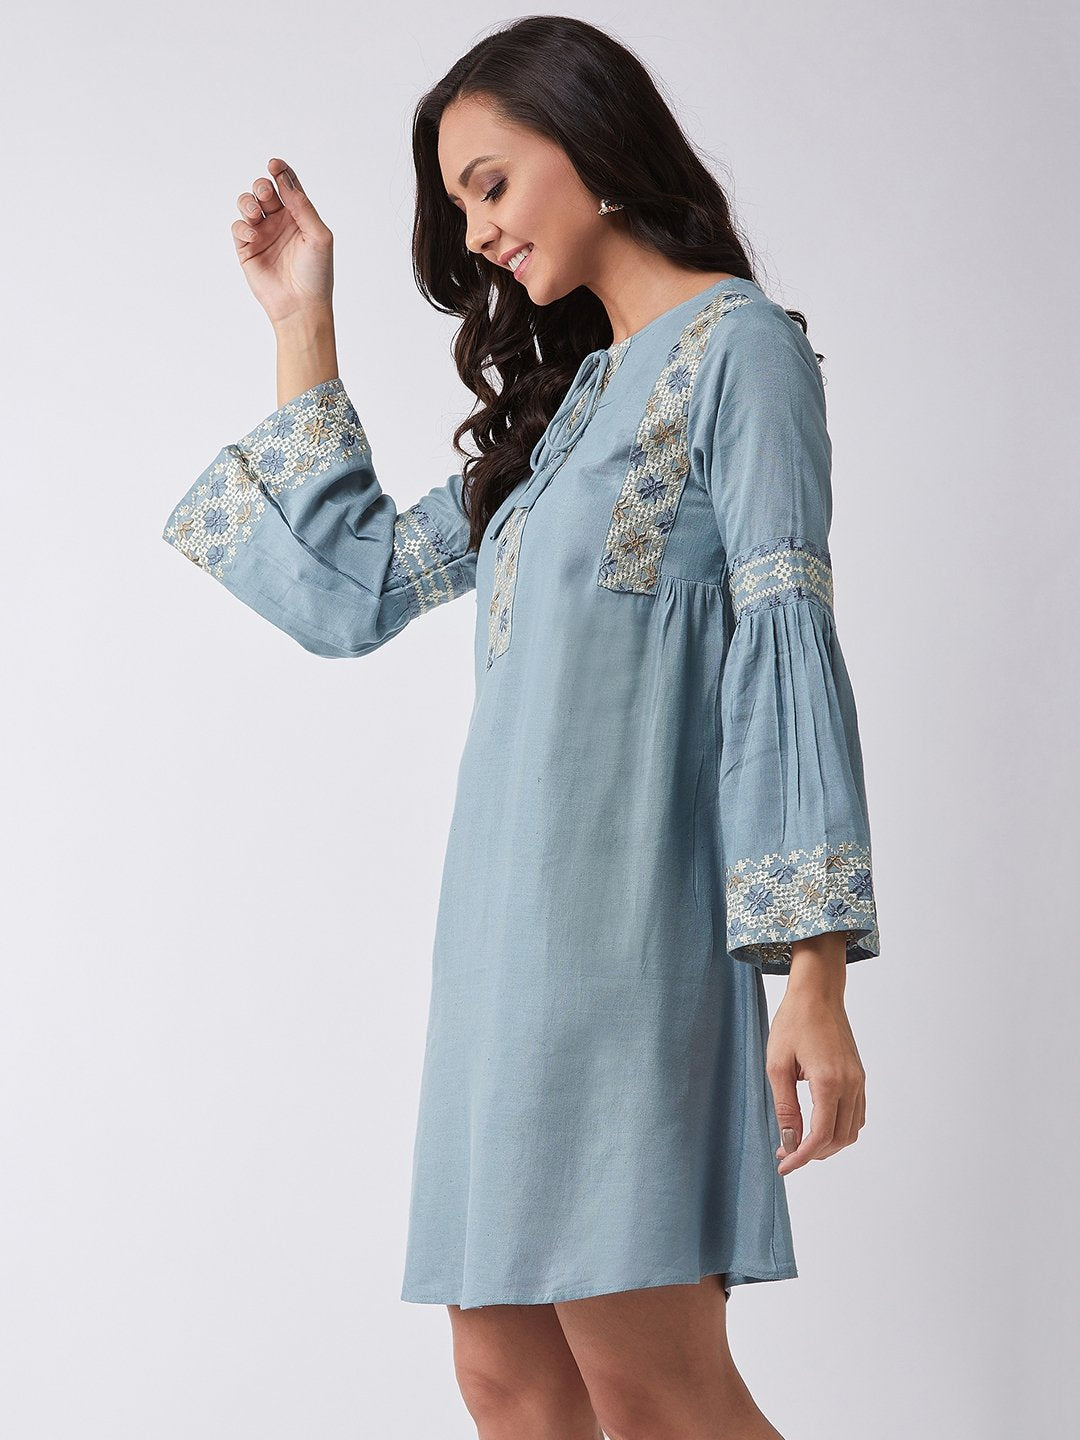 Hazy Blue Embroidered Dress